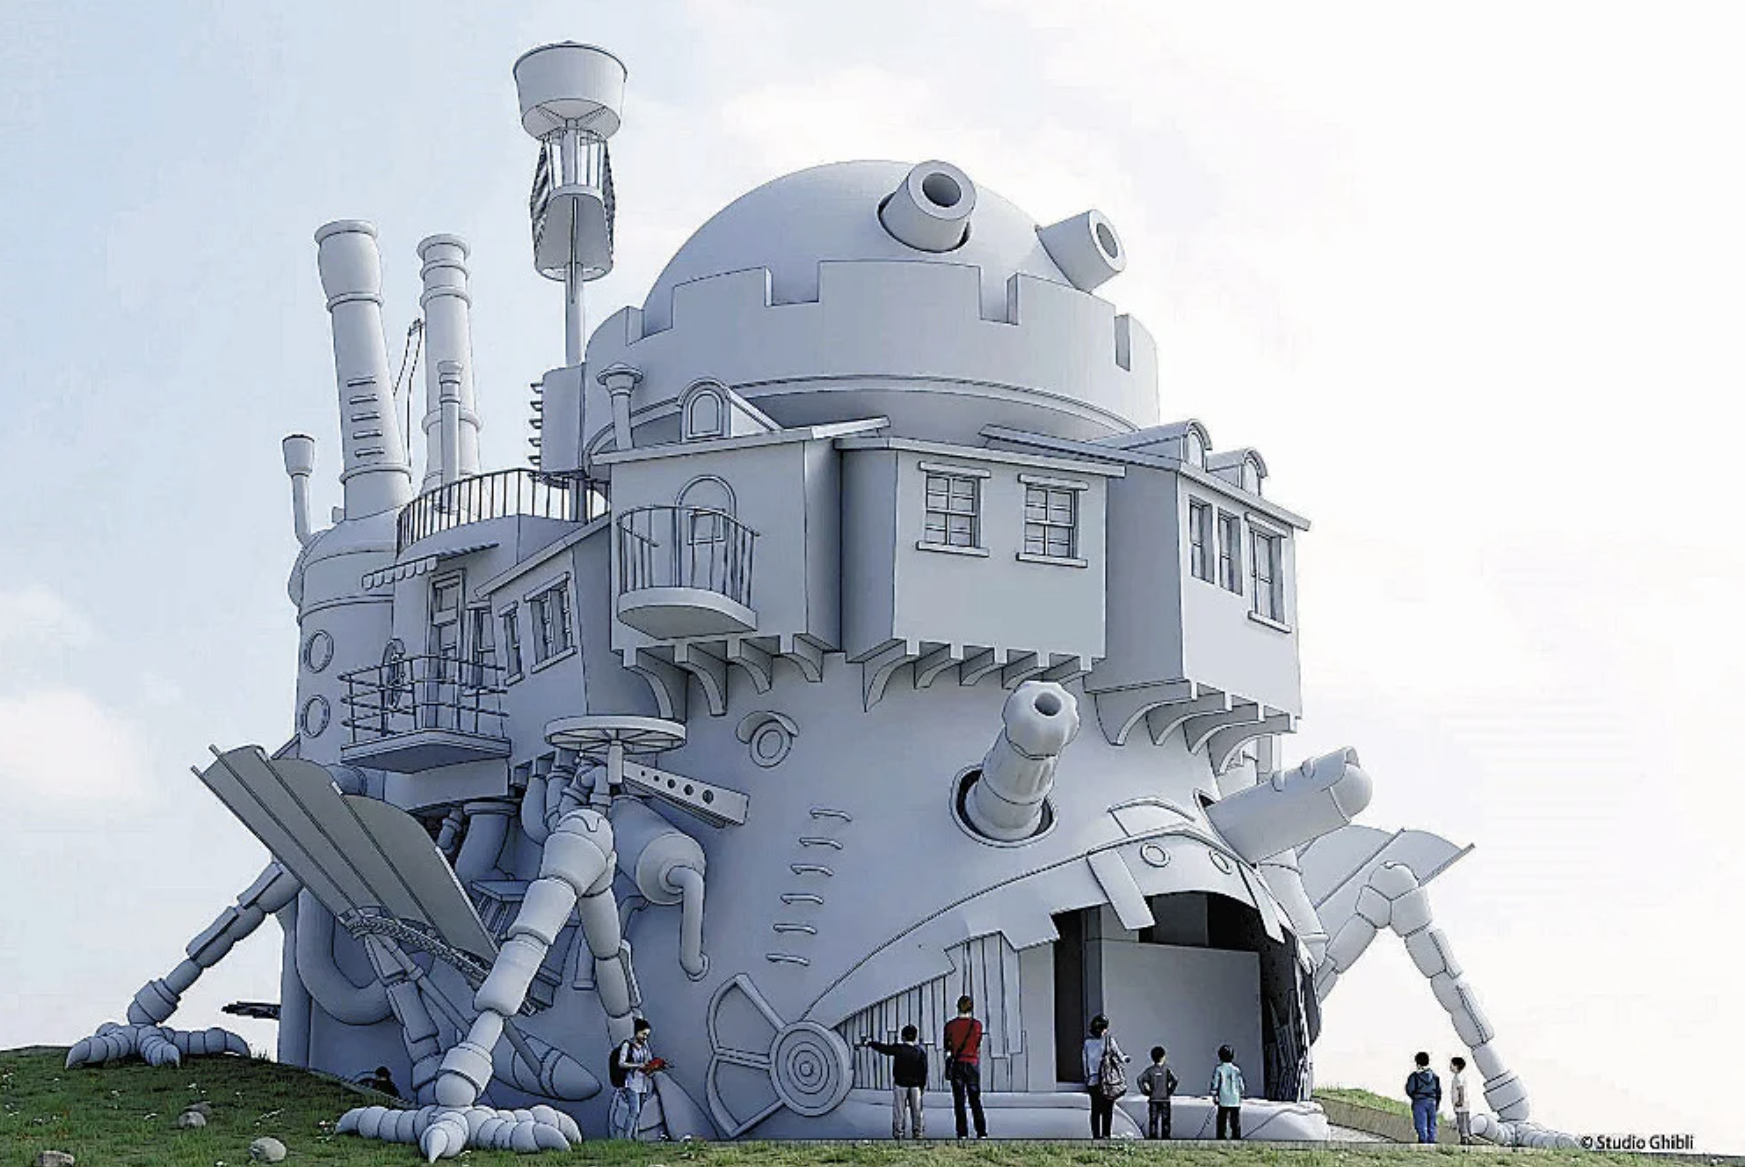 A First Look At The Real-Life Howl's Moving Castle In The Studio Ghibli Theme Park